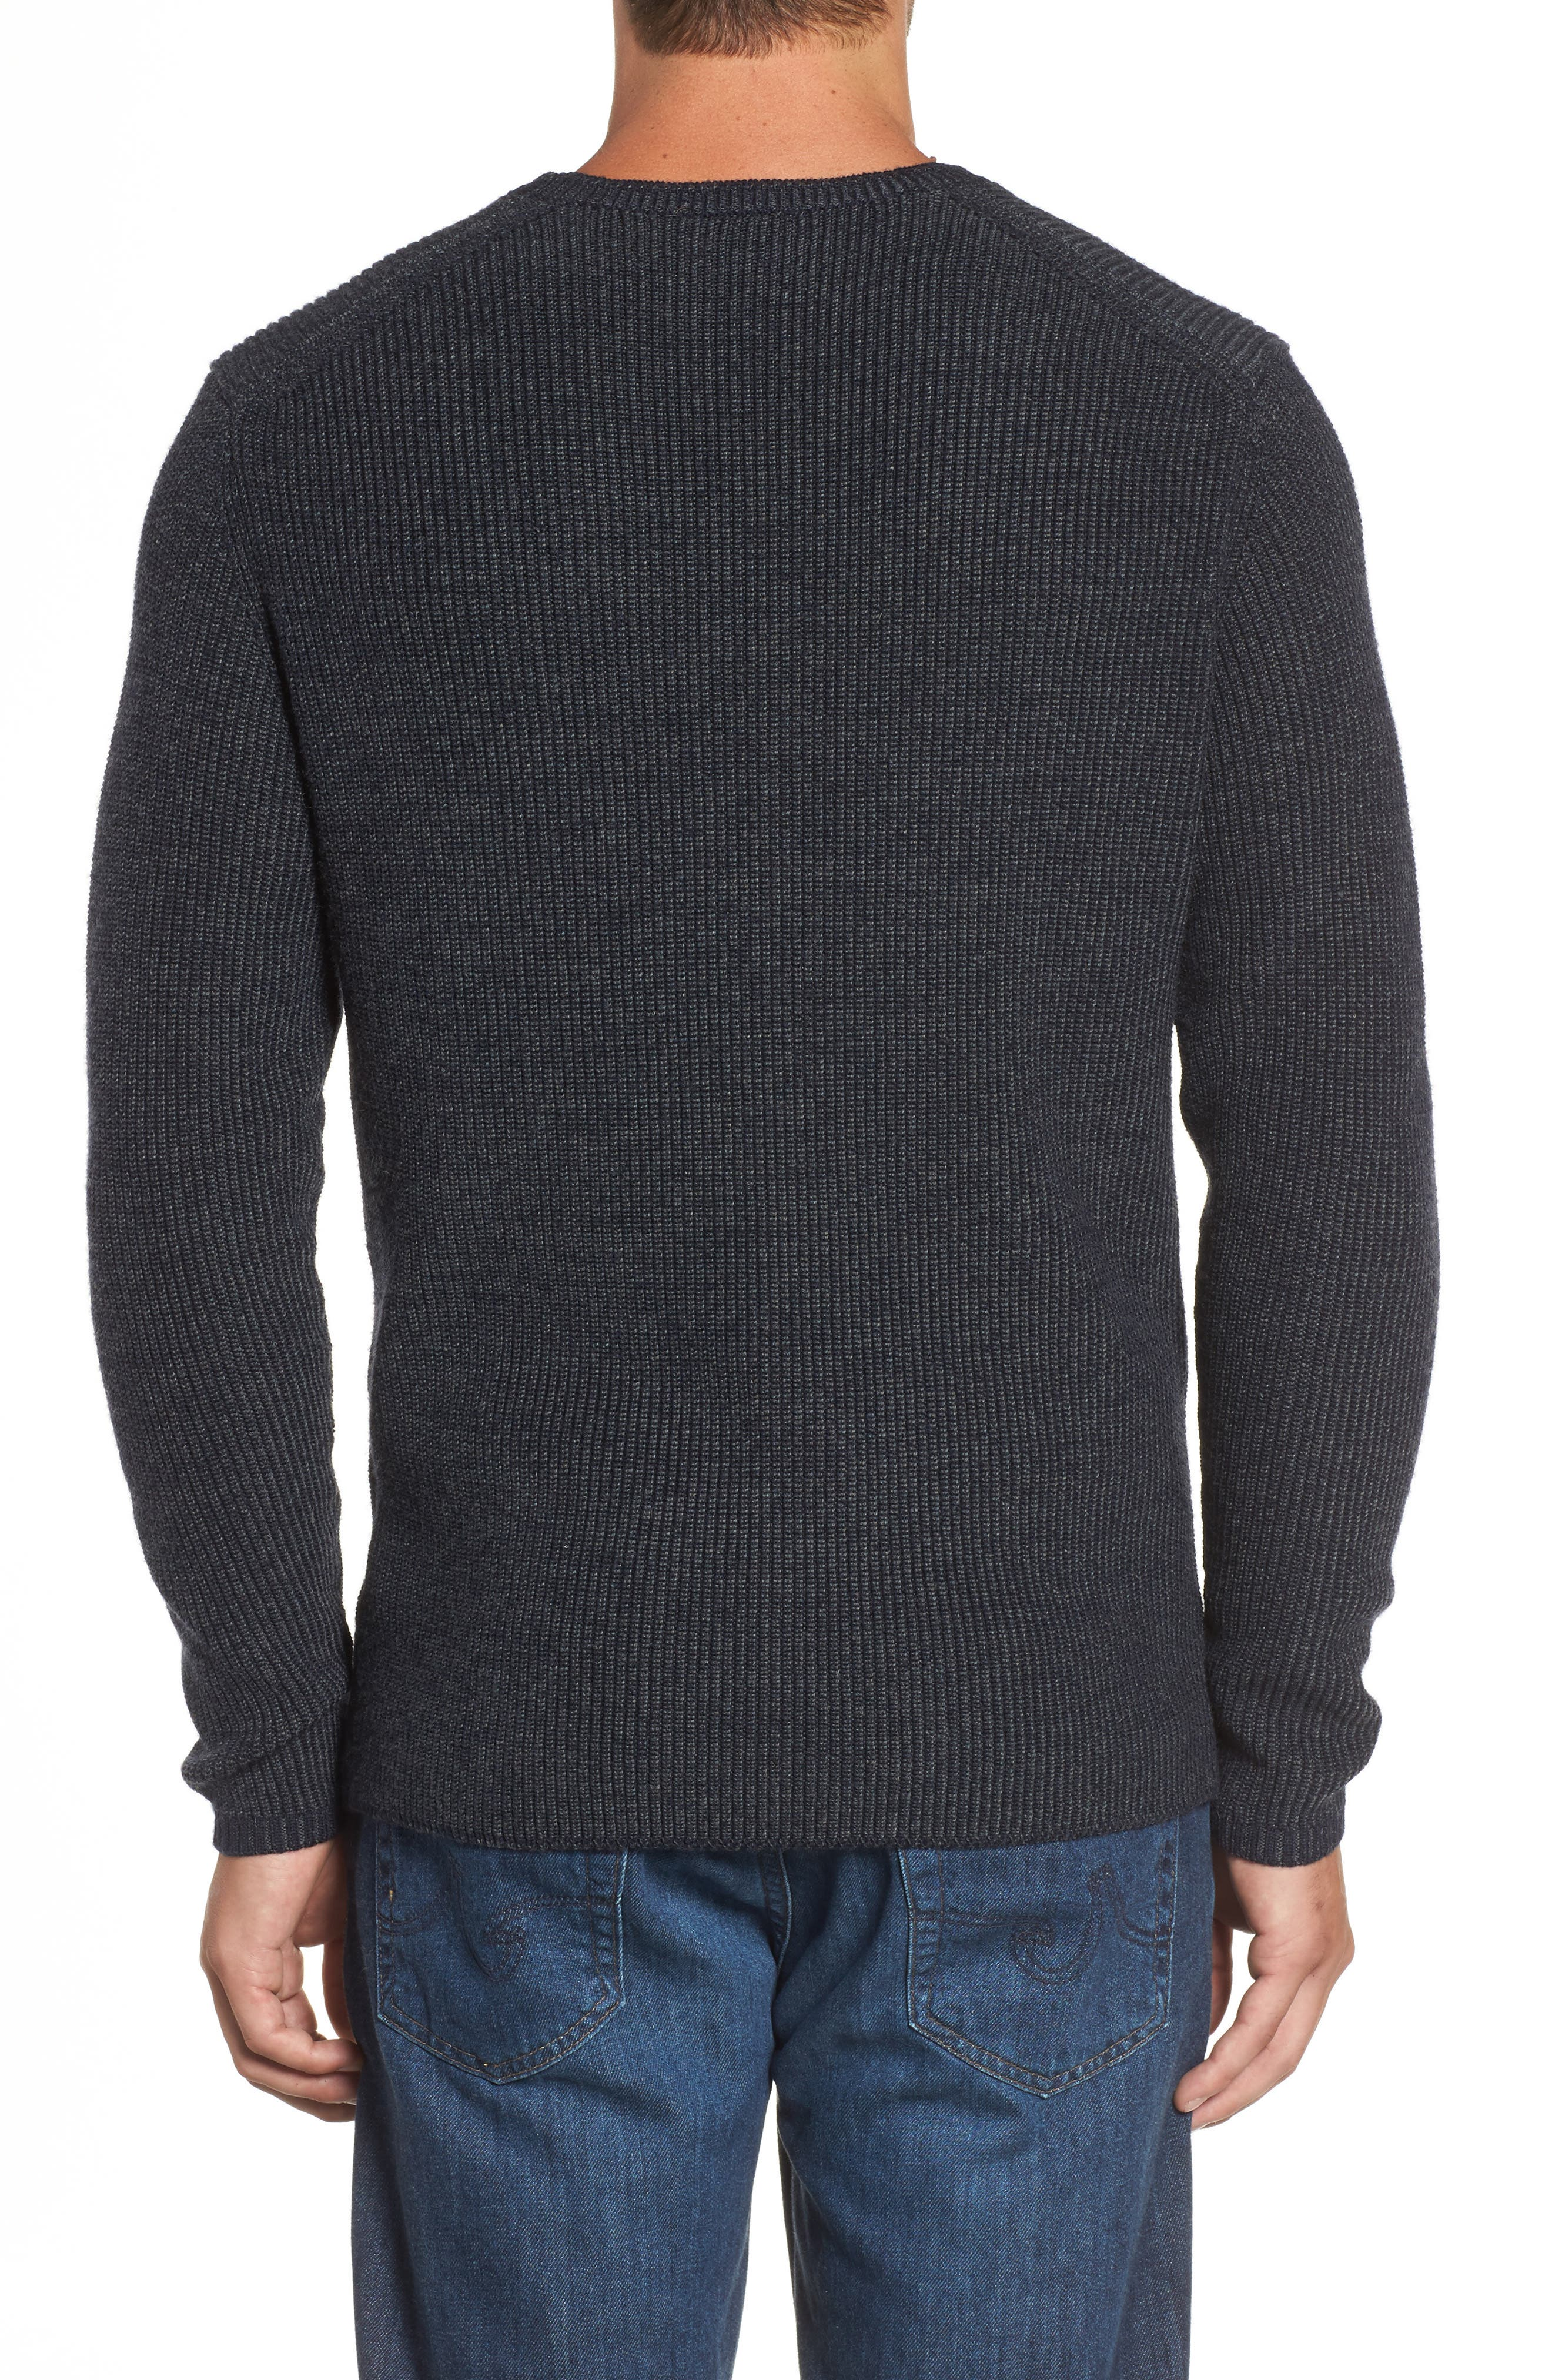 Whalers Bay Ribbed Merino Wool Sweater,                             Alternate thumbnail 2, color,                             470